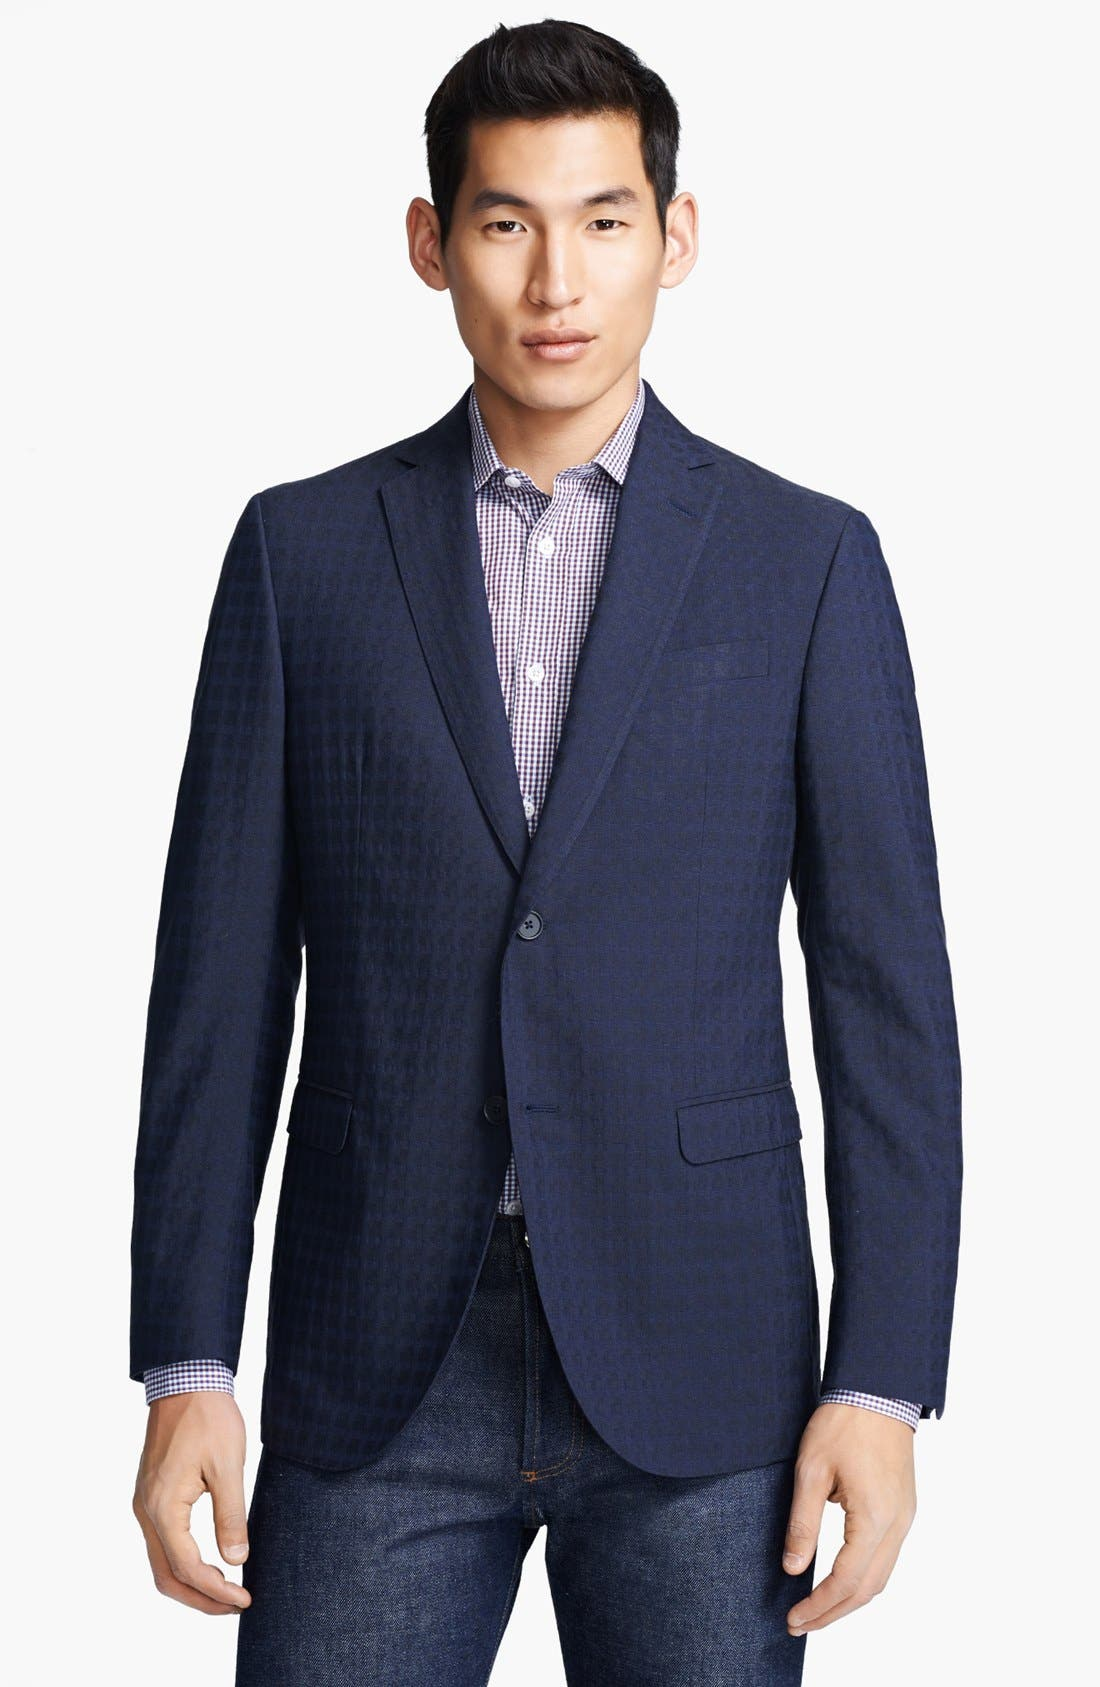 Alternate Image 1 Selected - Z Zegna Navy Jacquard Check Wool Sportcoat